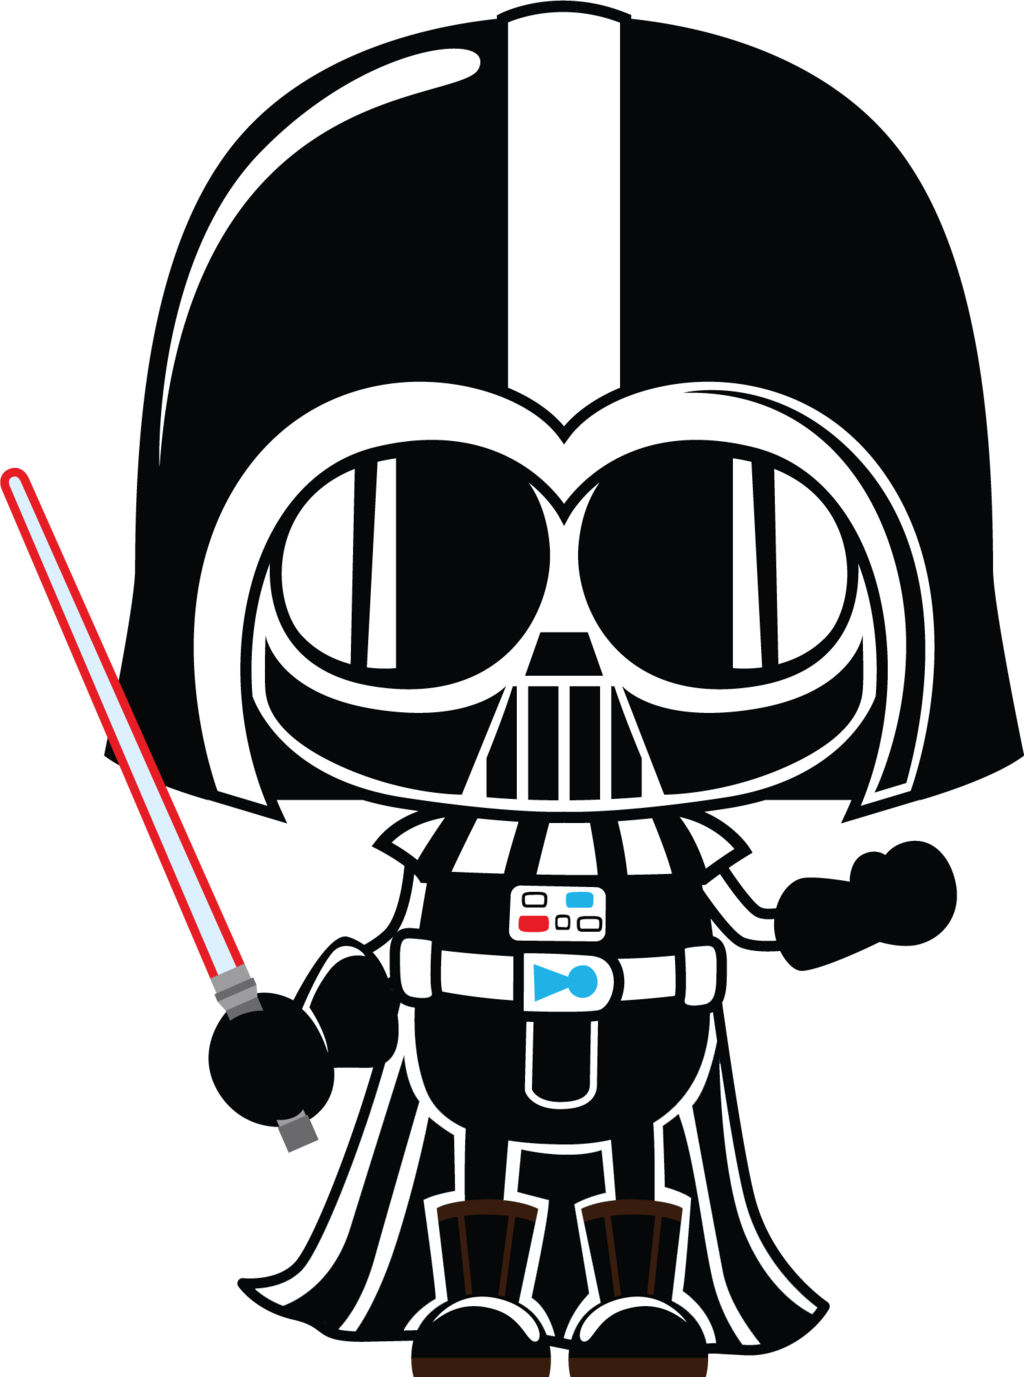 Star wars cartoon characters clipart png freeuse download Darth Vader by Chrispix326.deviantart.com on @DeviantArt | Birthdays ... png freeuse download